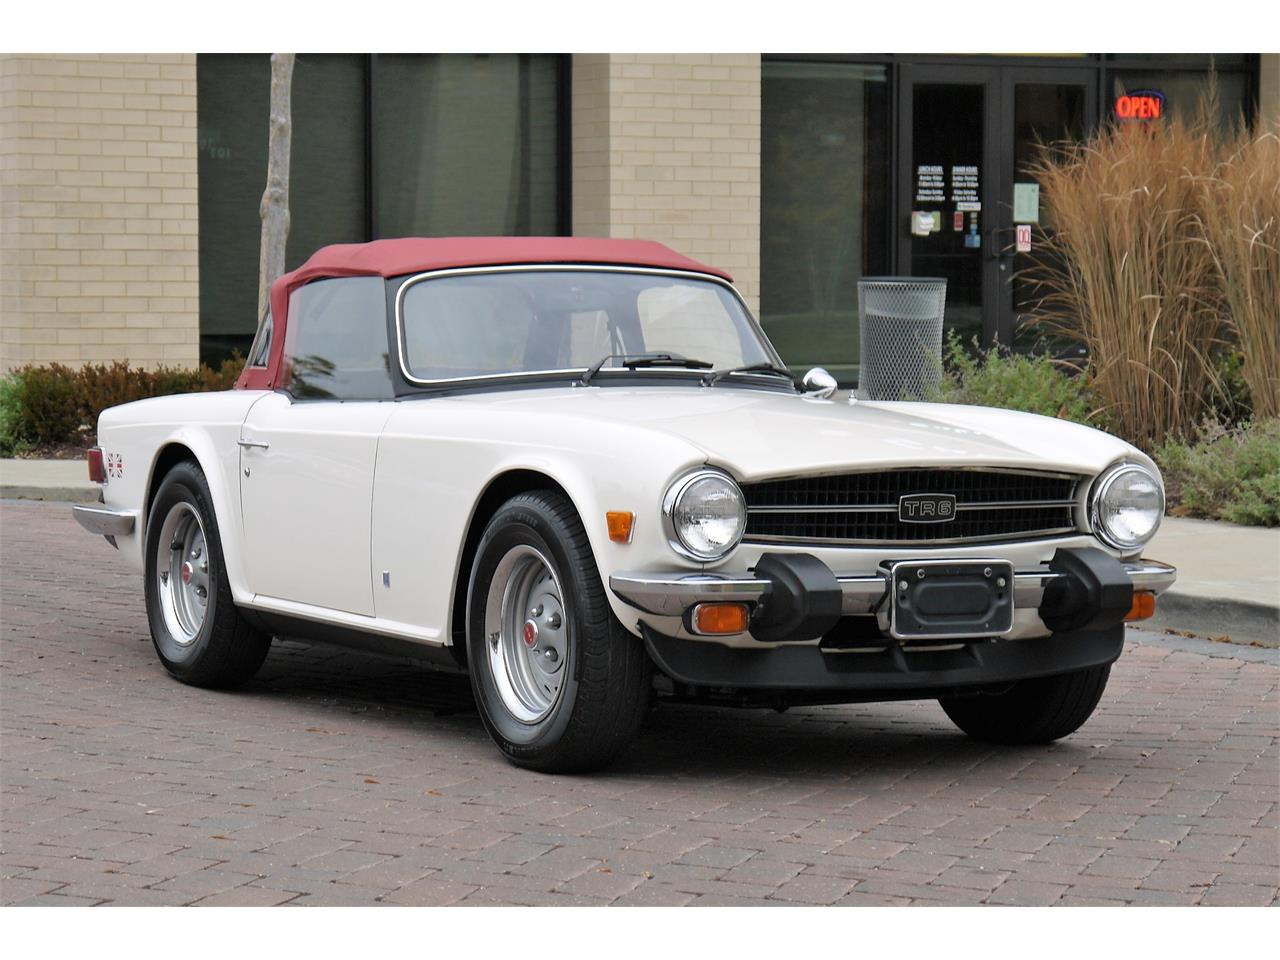 1976 Triumph TR6 for sale in Brentwood, TN